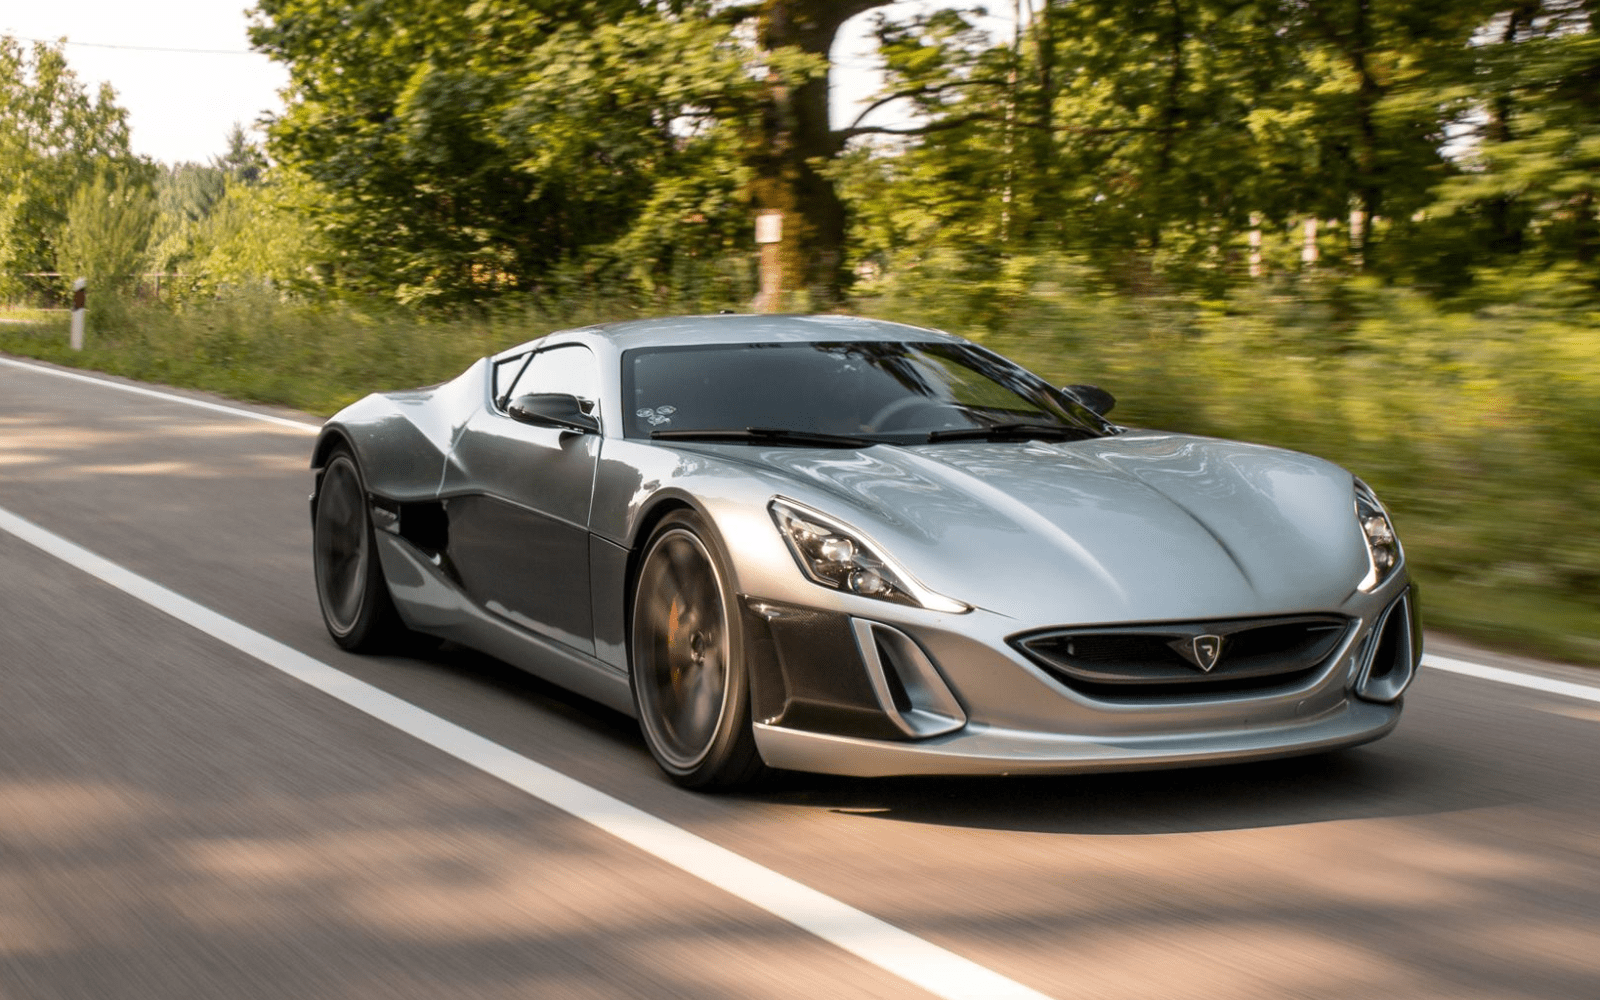 Rimac is working on a new higher performance electric supercar, says it will deliver only 8 Concept_One this year